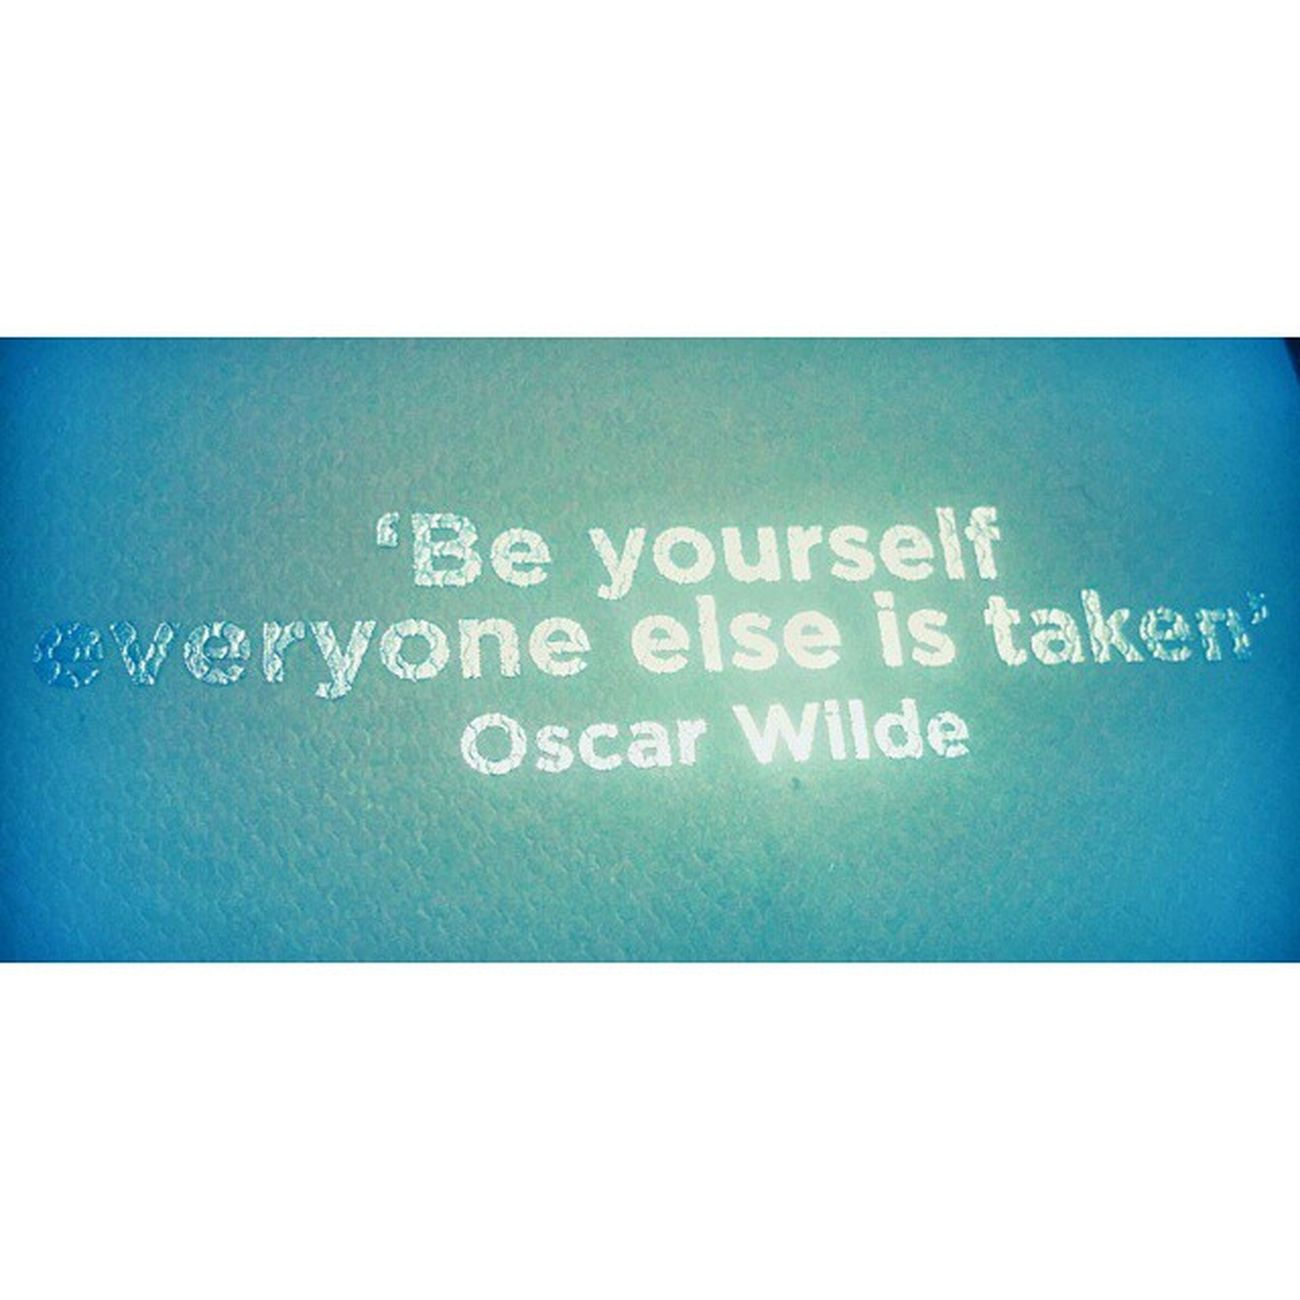 Be yourself! Quotes Oscarwilde Motivational Secretsanta Christmas Romania Ig_romania Picoftheday Inspirational